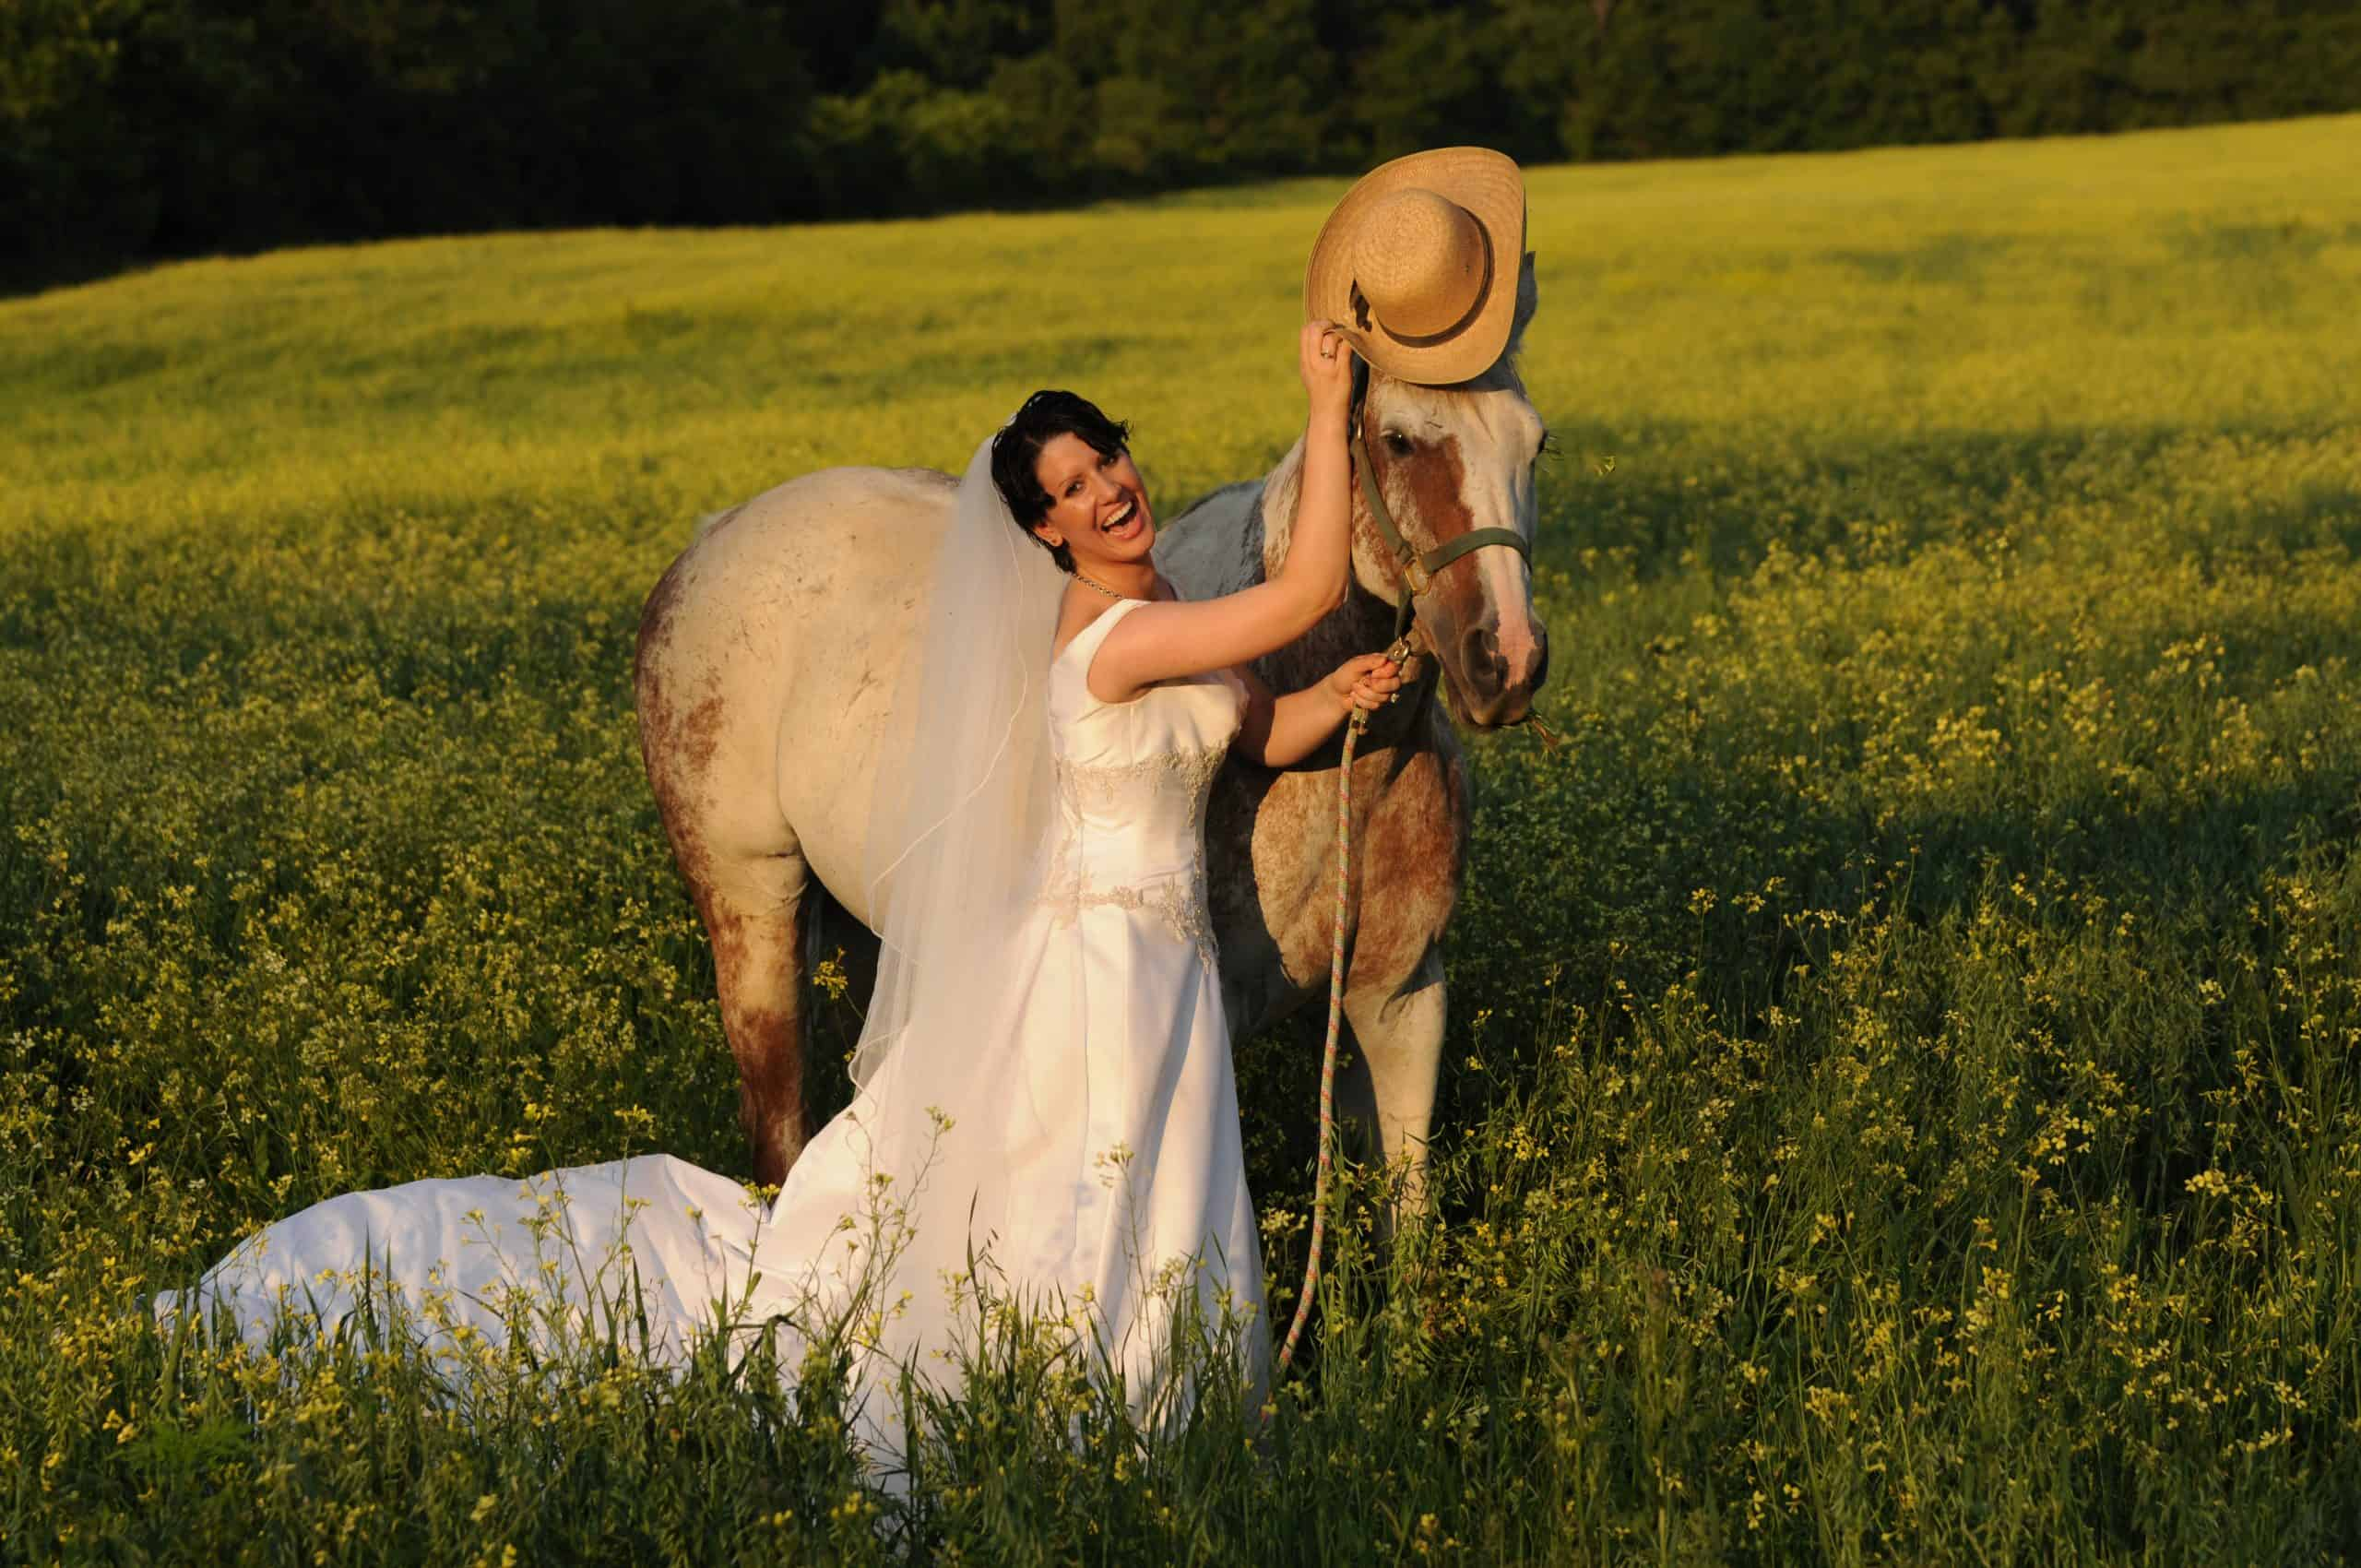 Bride in Wedding Dress with horse at a farm